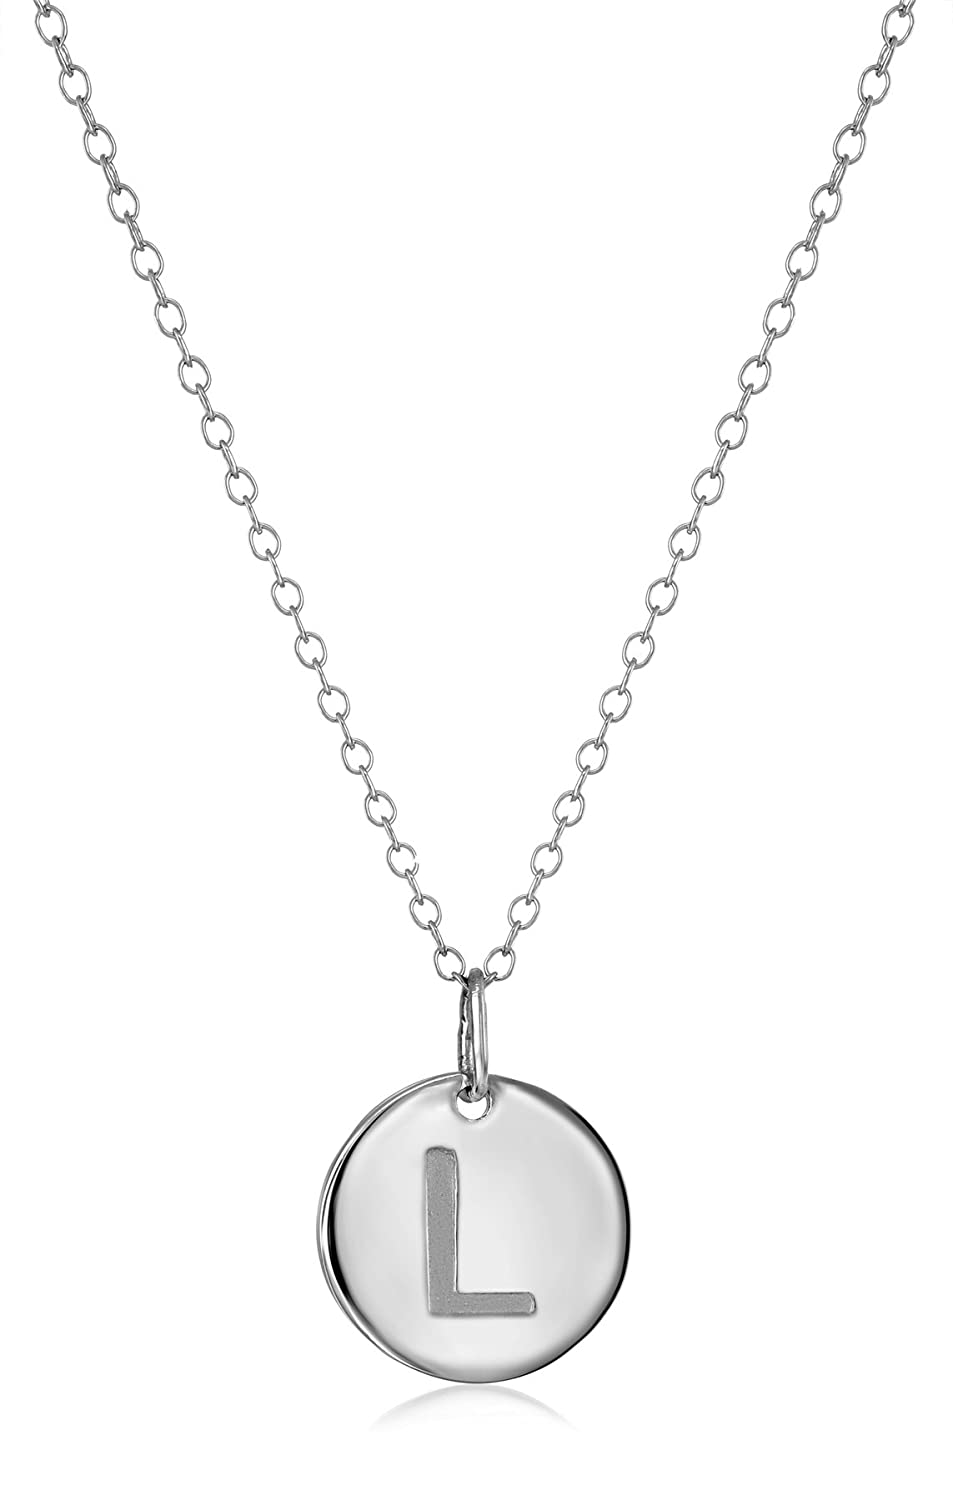 18.64 Sterling Silver Round Disc Initial Pendant Necklace